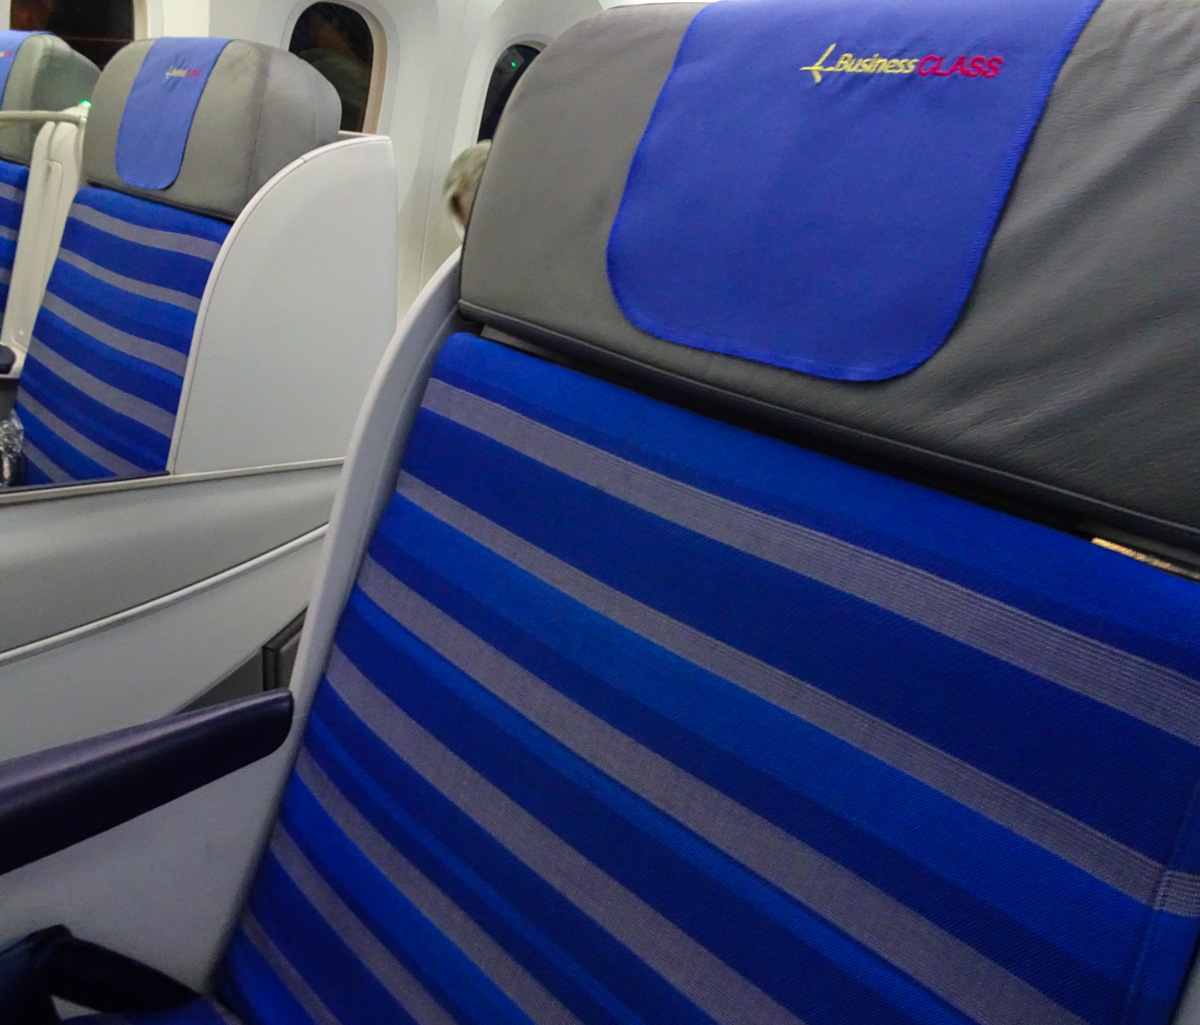 Africa Business Class: LOT Polish Airlines Business Class Review –Embraer 195